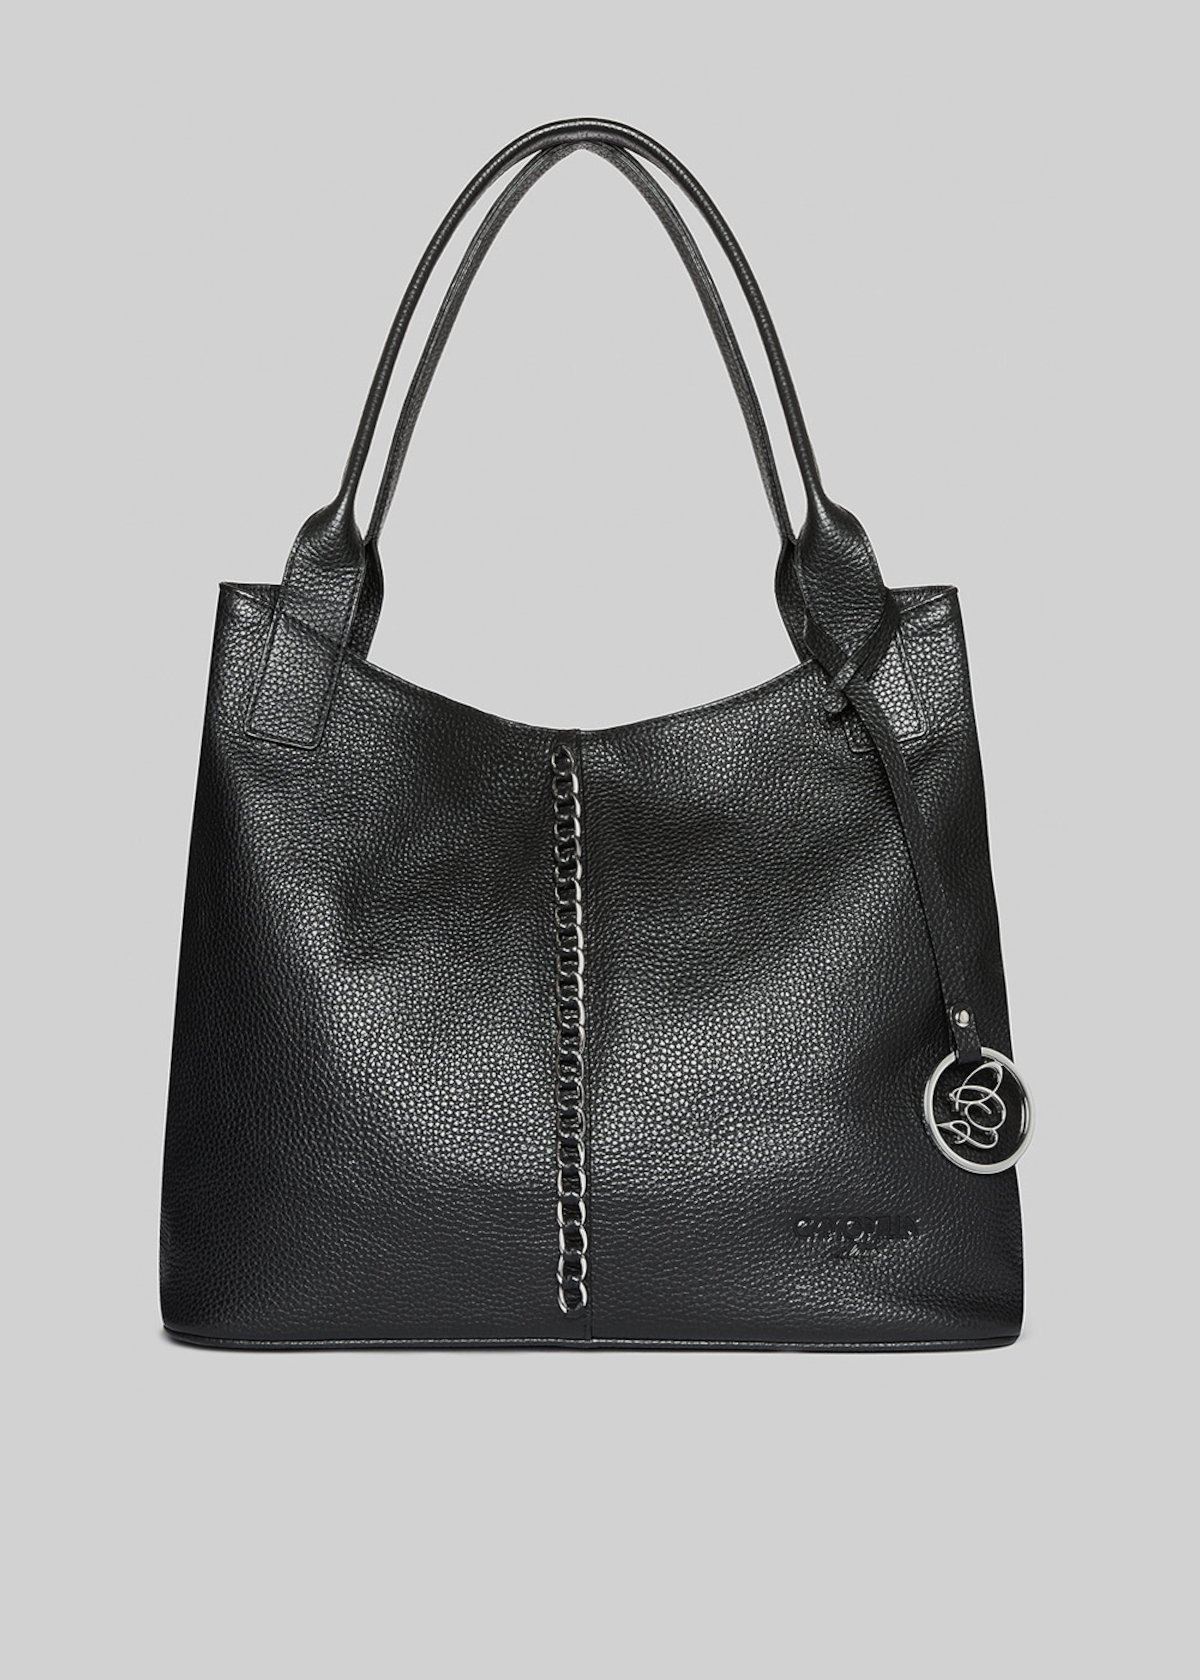 Bertilla bag made of genuine leather with leaning metal logo - Black